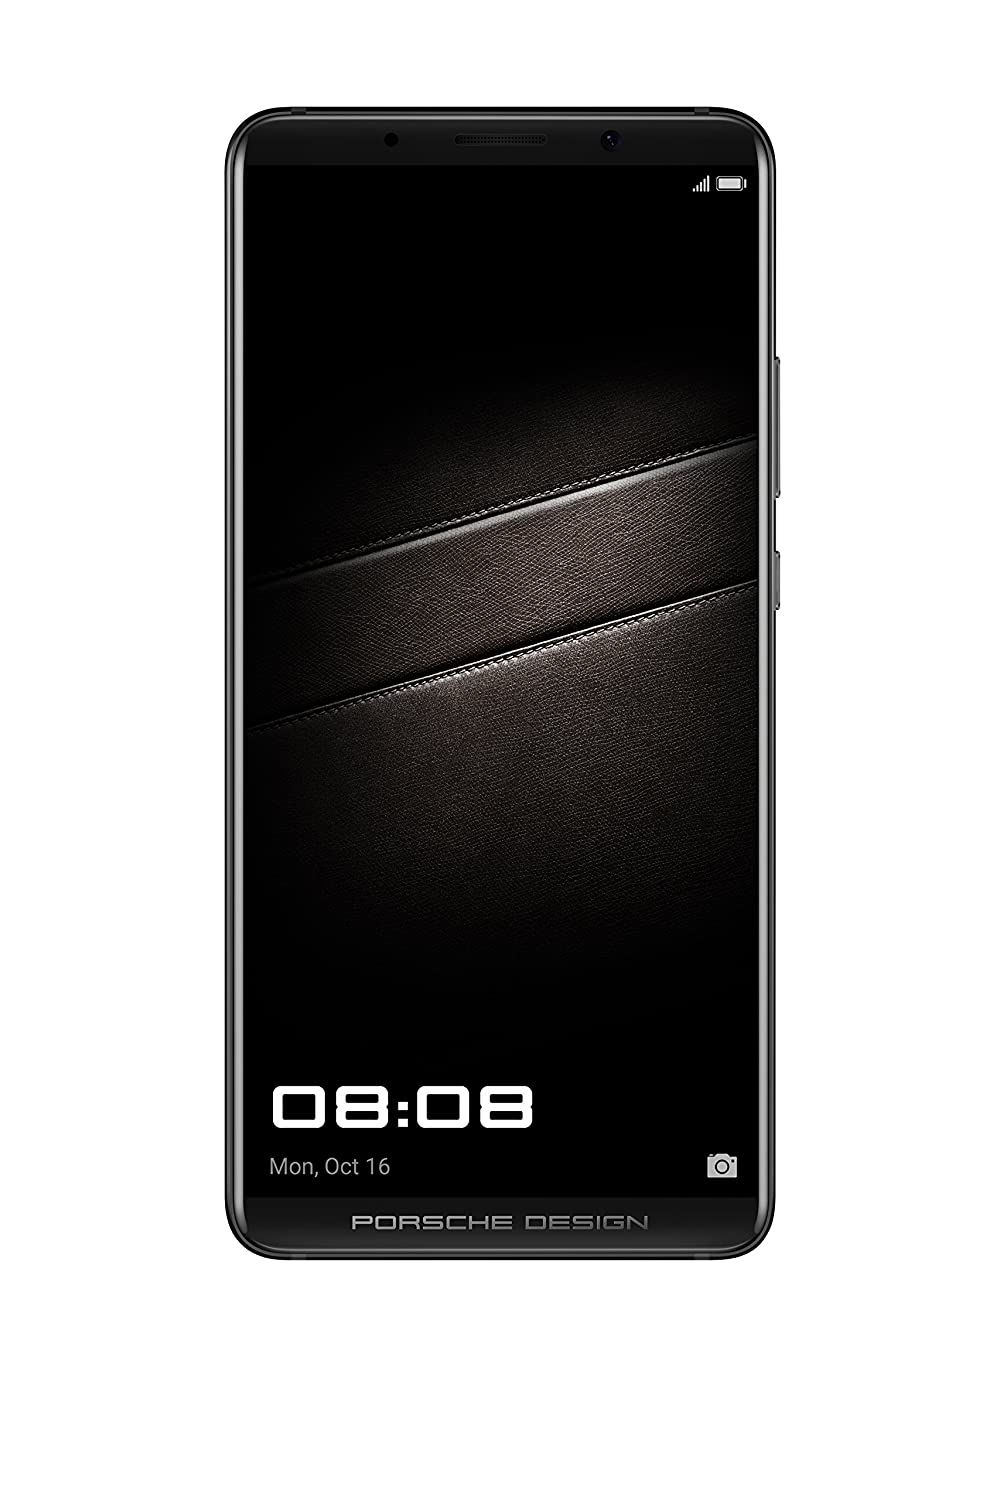 new concept dc06b 24d13 Huawei Mate 10 Porsche Design Factory Unlocked 256GB Android Smartphone  Diamond Black